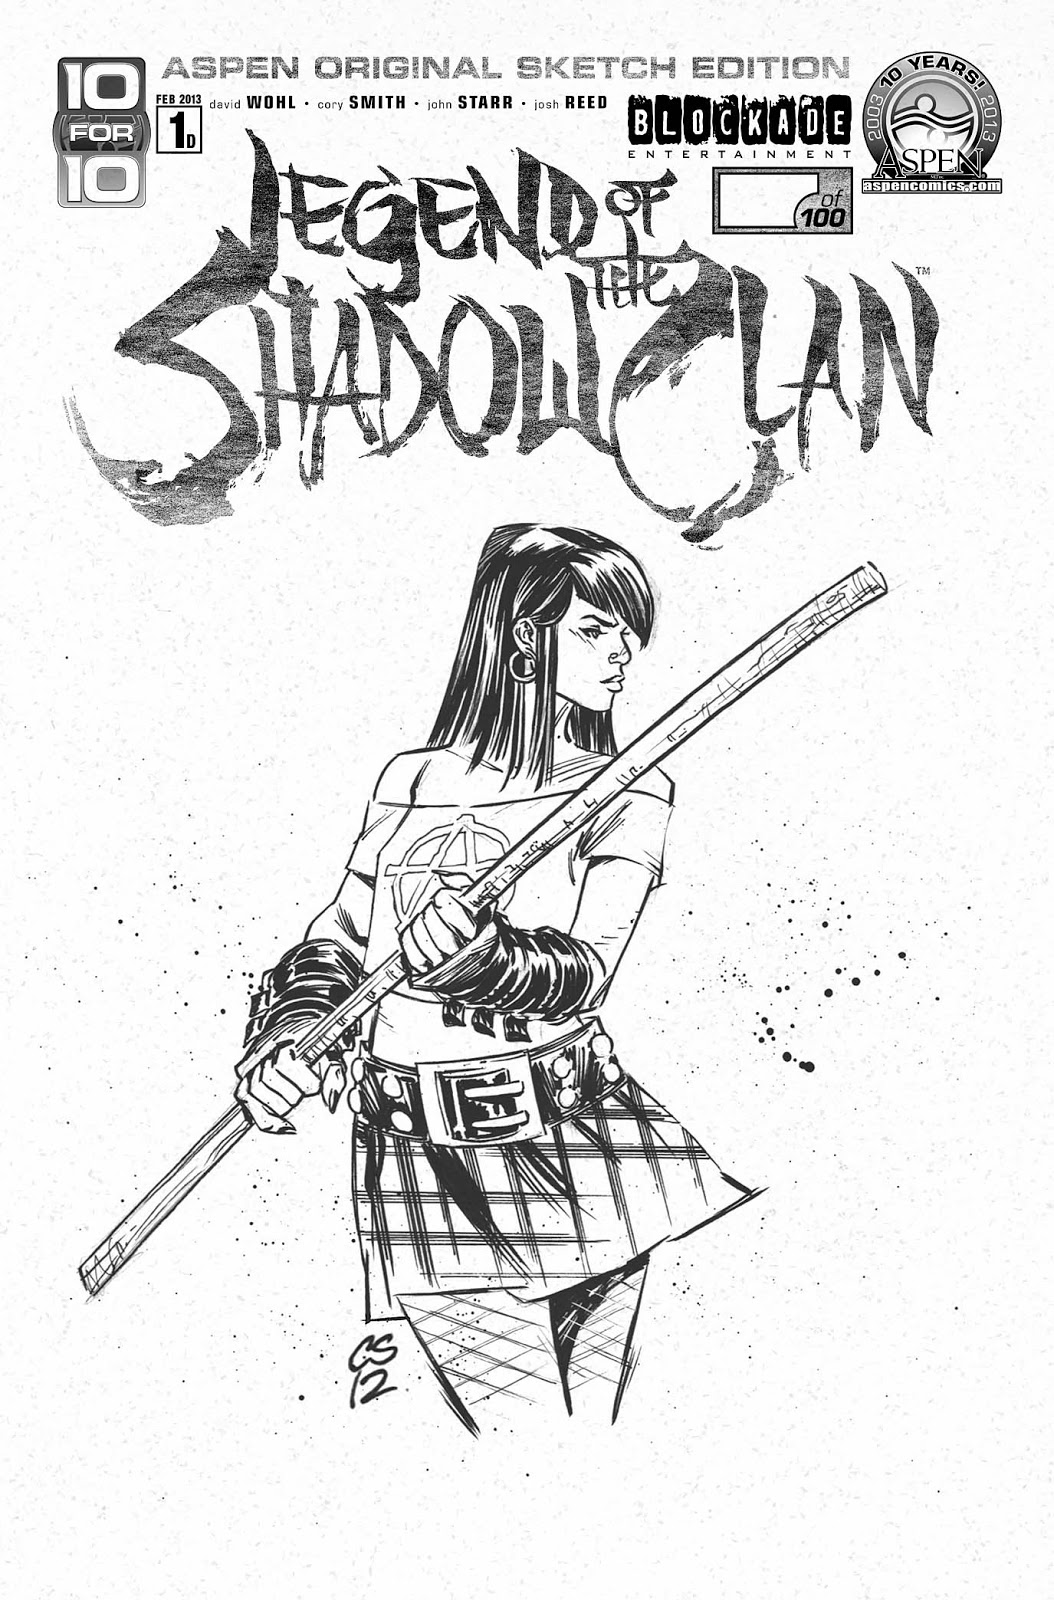 PR: ASPEN COMICS KICKS OFF 10 FOR 10 WITH LEGEND OF THE SHADOW CLAN AND ADDED INCENTIVES FOR FANS AND RETAILERS